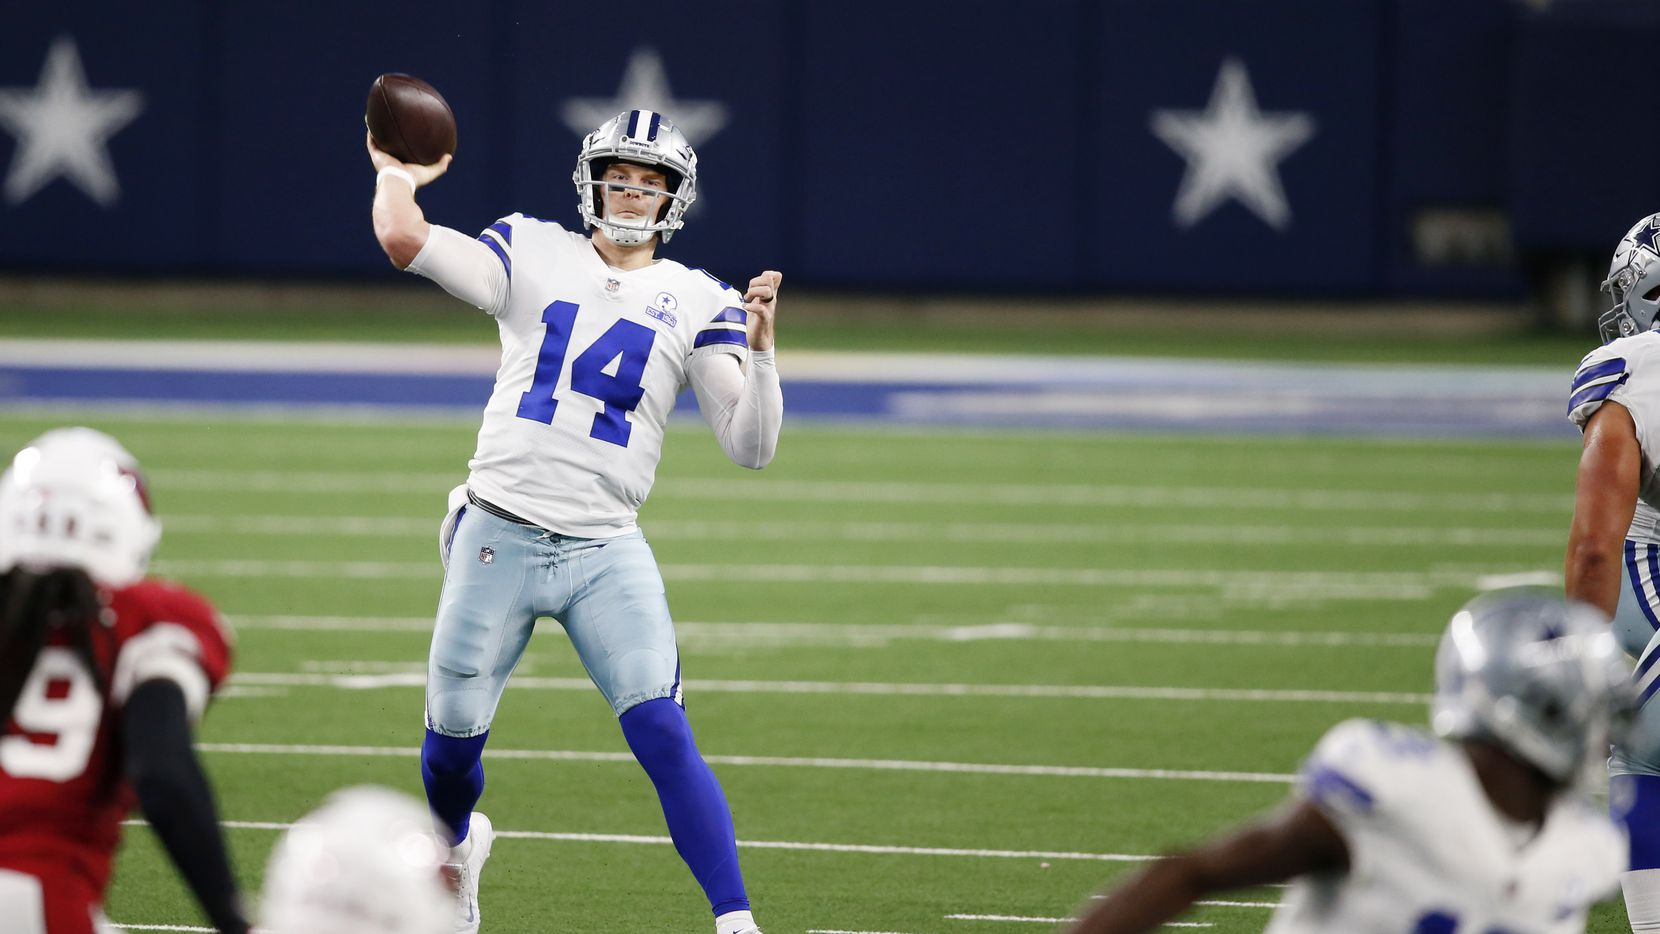 Dallas Cowboys quarterback Andy Dalton (14) attempts a pass in a game against the Arizona Cardinals during the second quarter of play at AT&T Stadium on Monday, October 19, 2020 in Arlington, Texas.